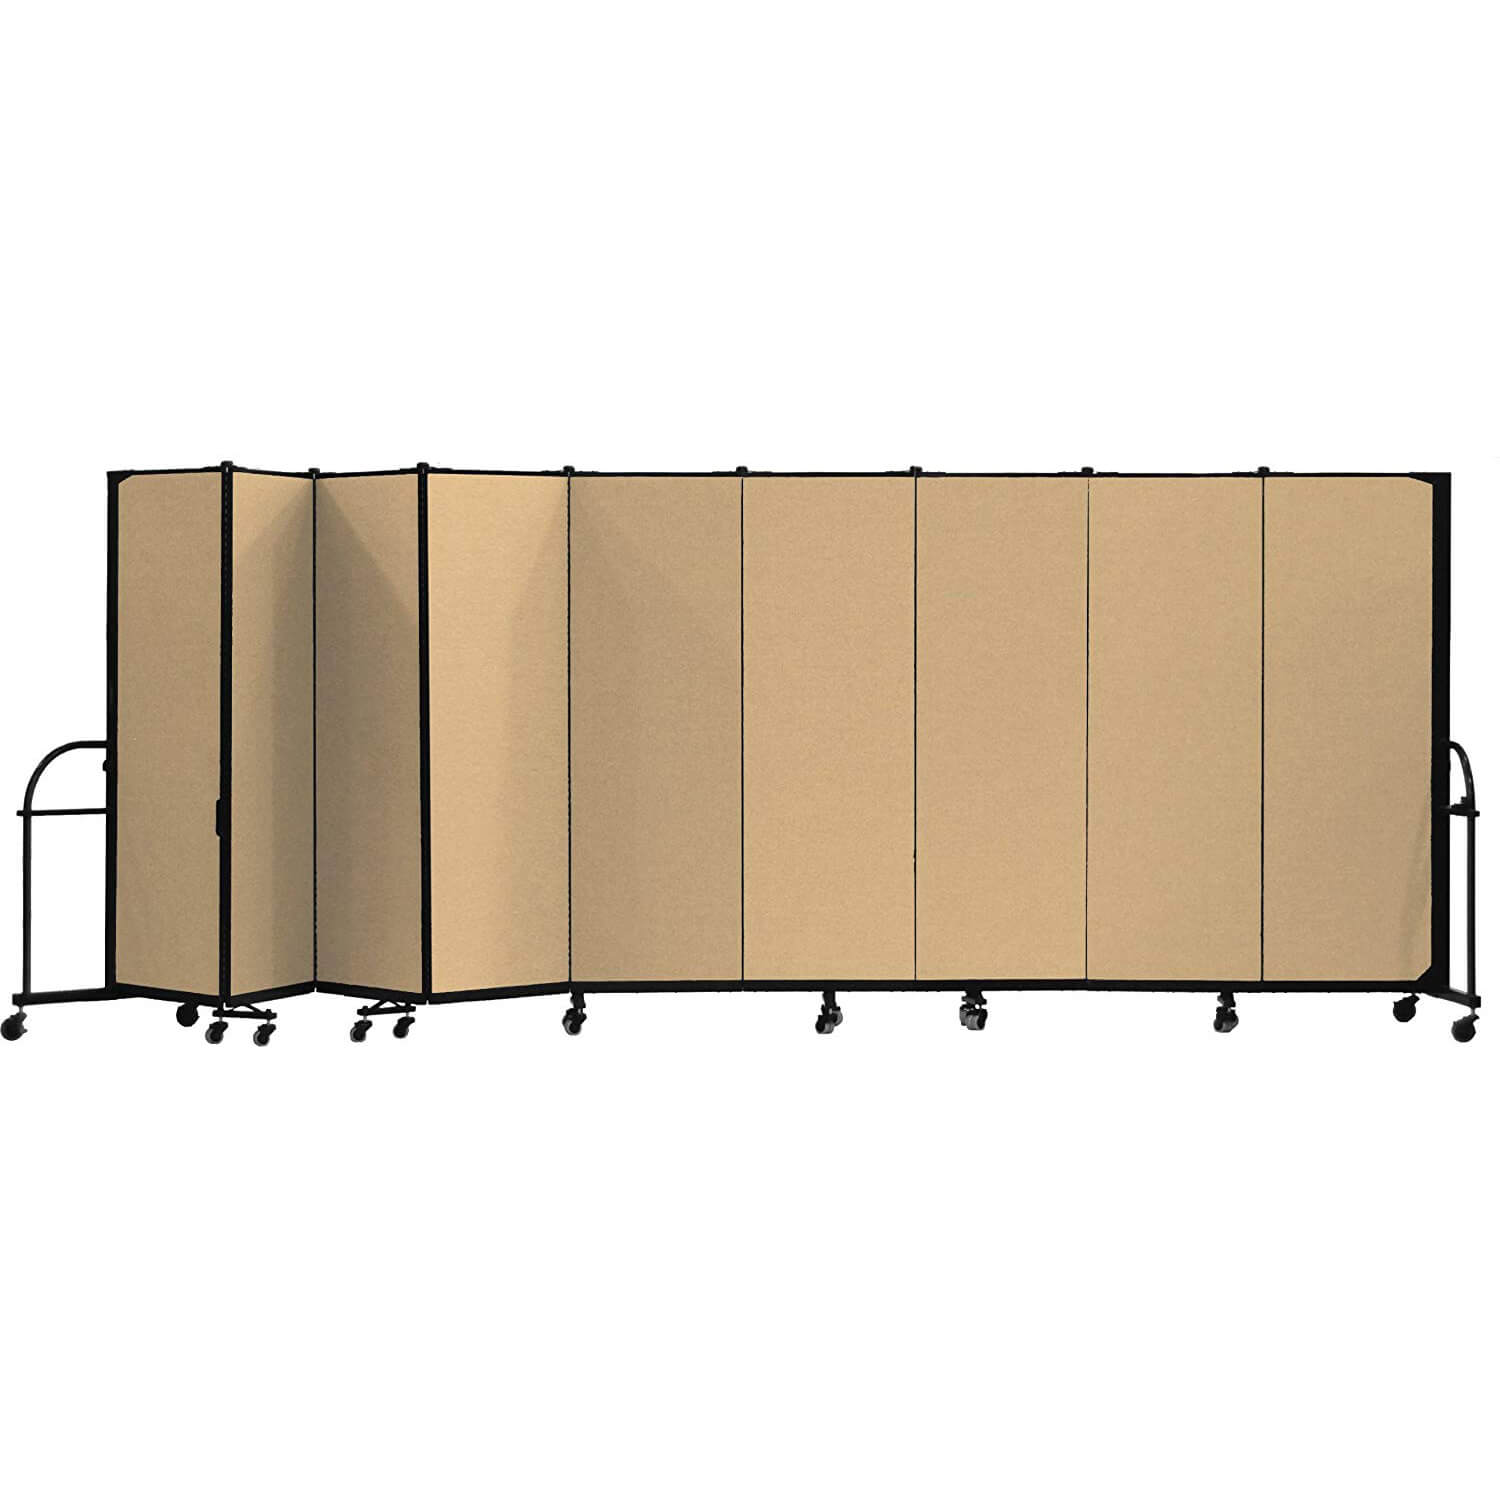 Panel room dividers CUB QSCFSL609DW RCS